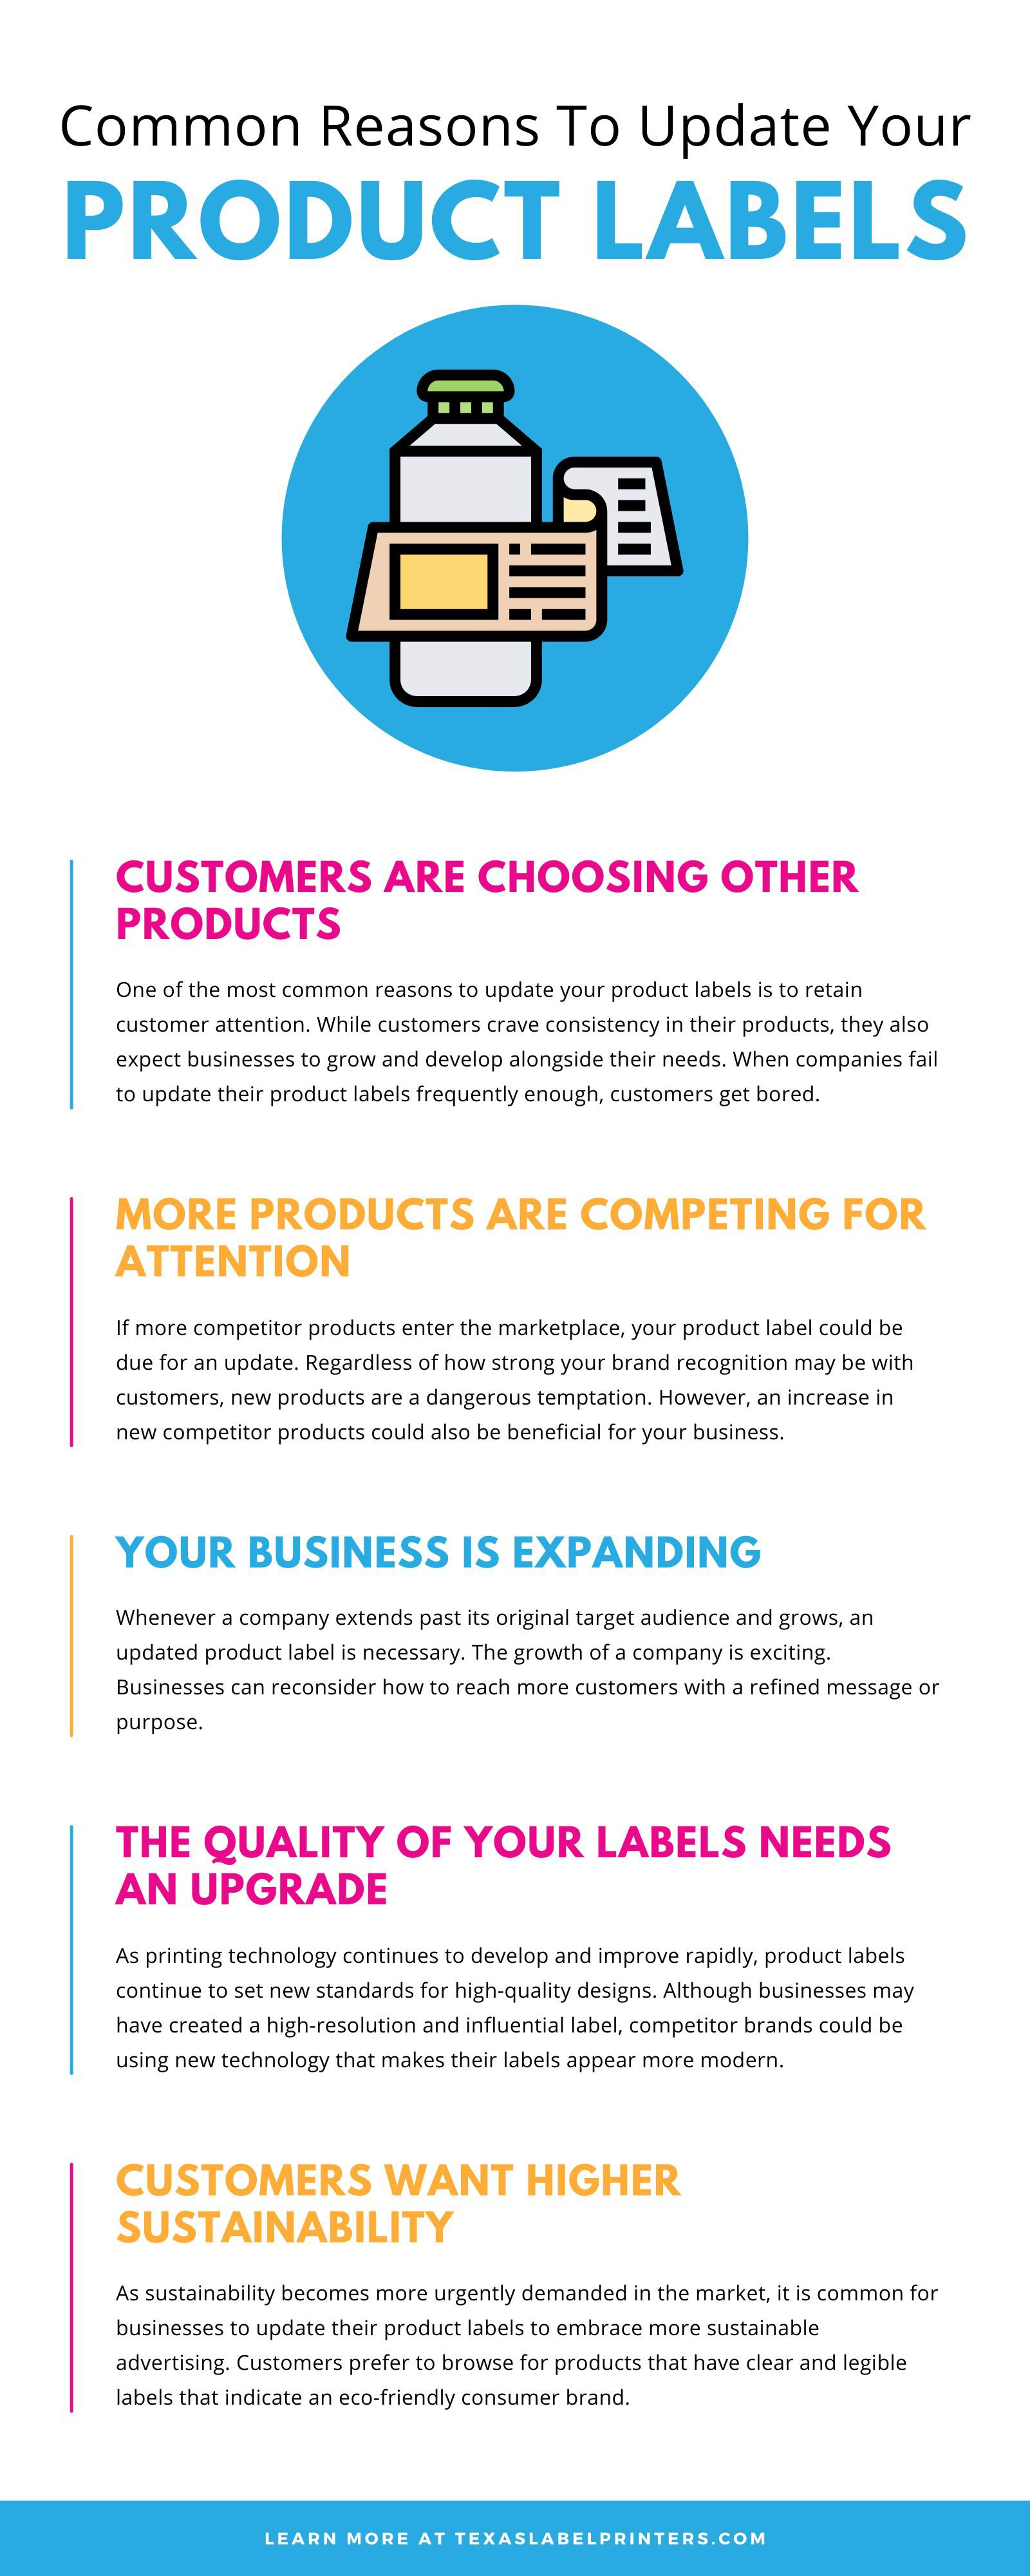 Common Reasons To Update Your Product Labels Infographic